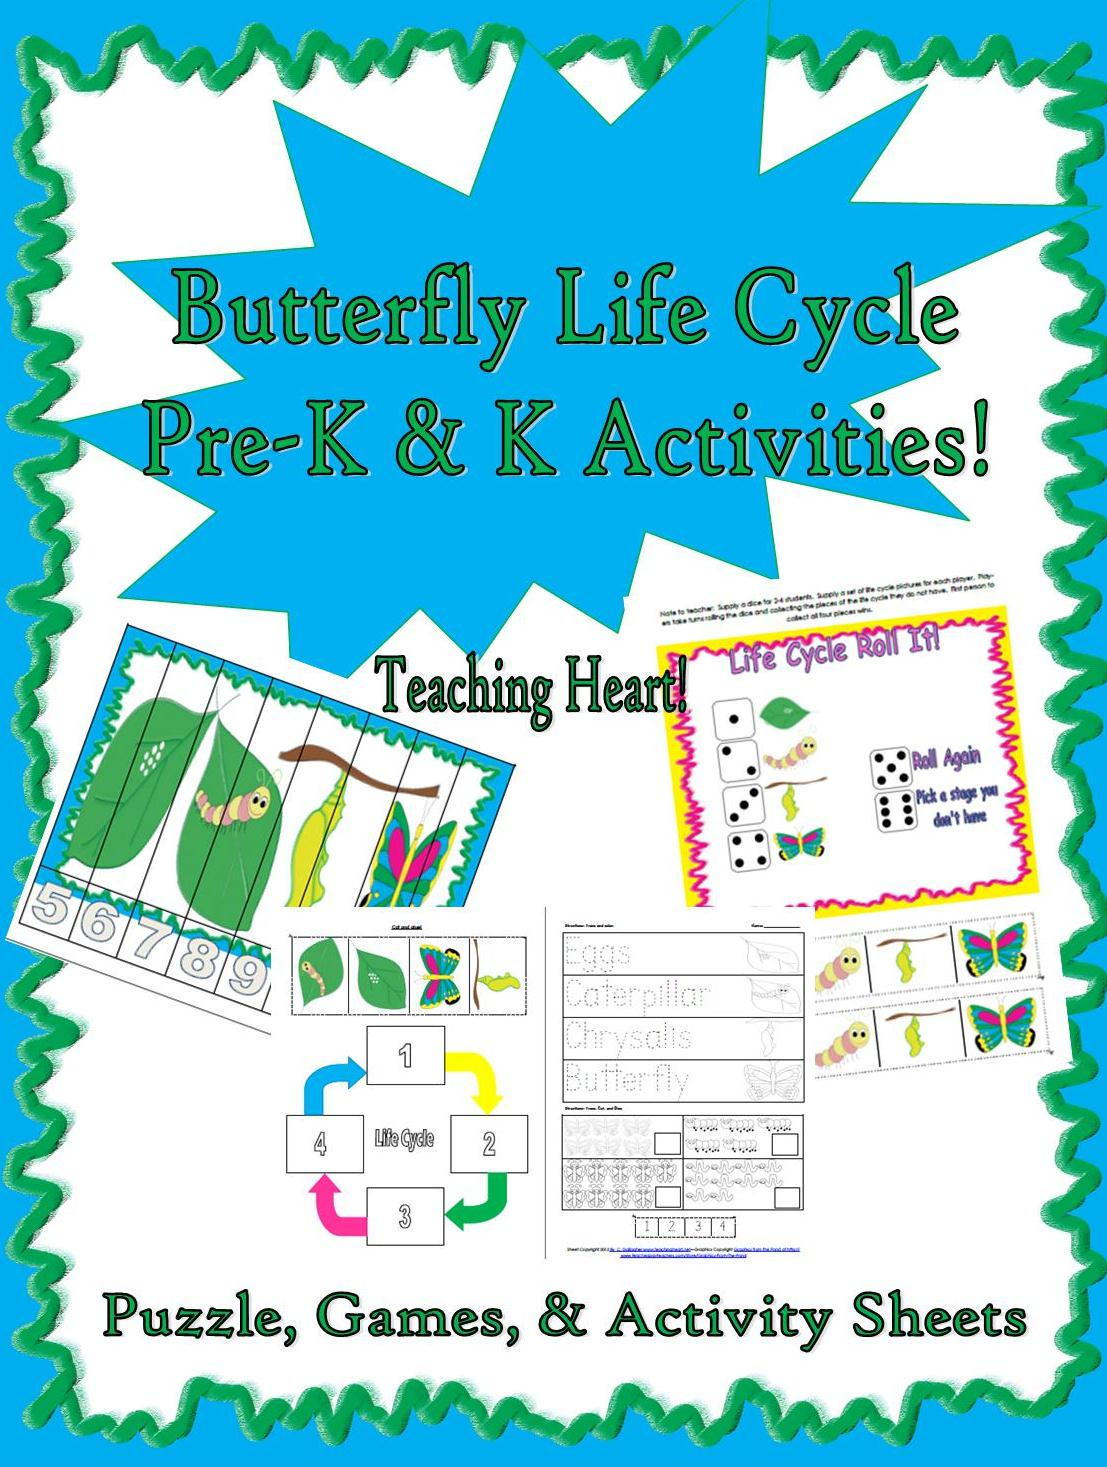 Insects Unit For Teachers - Links to printables, lessons, ideas ...